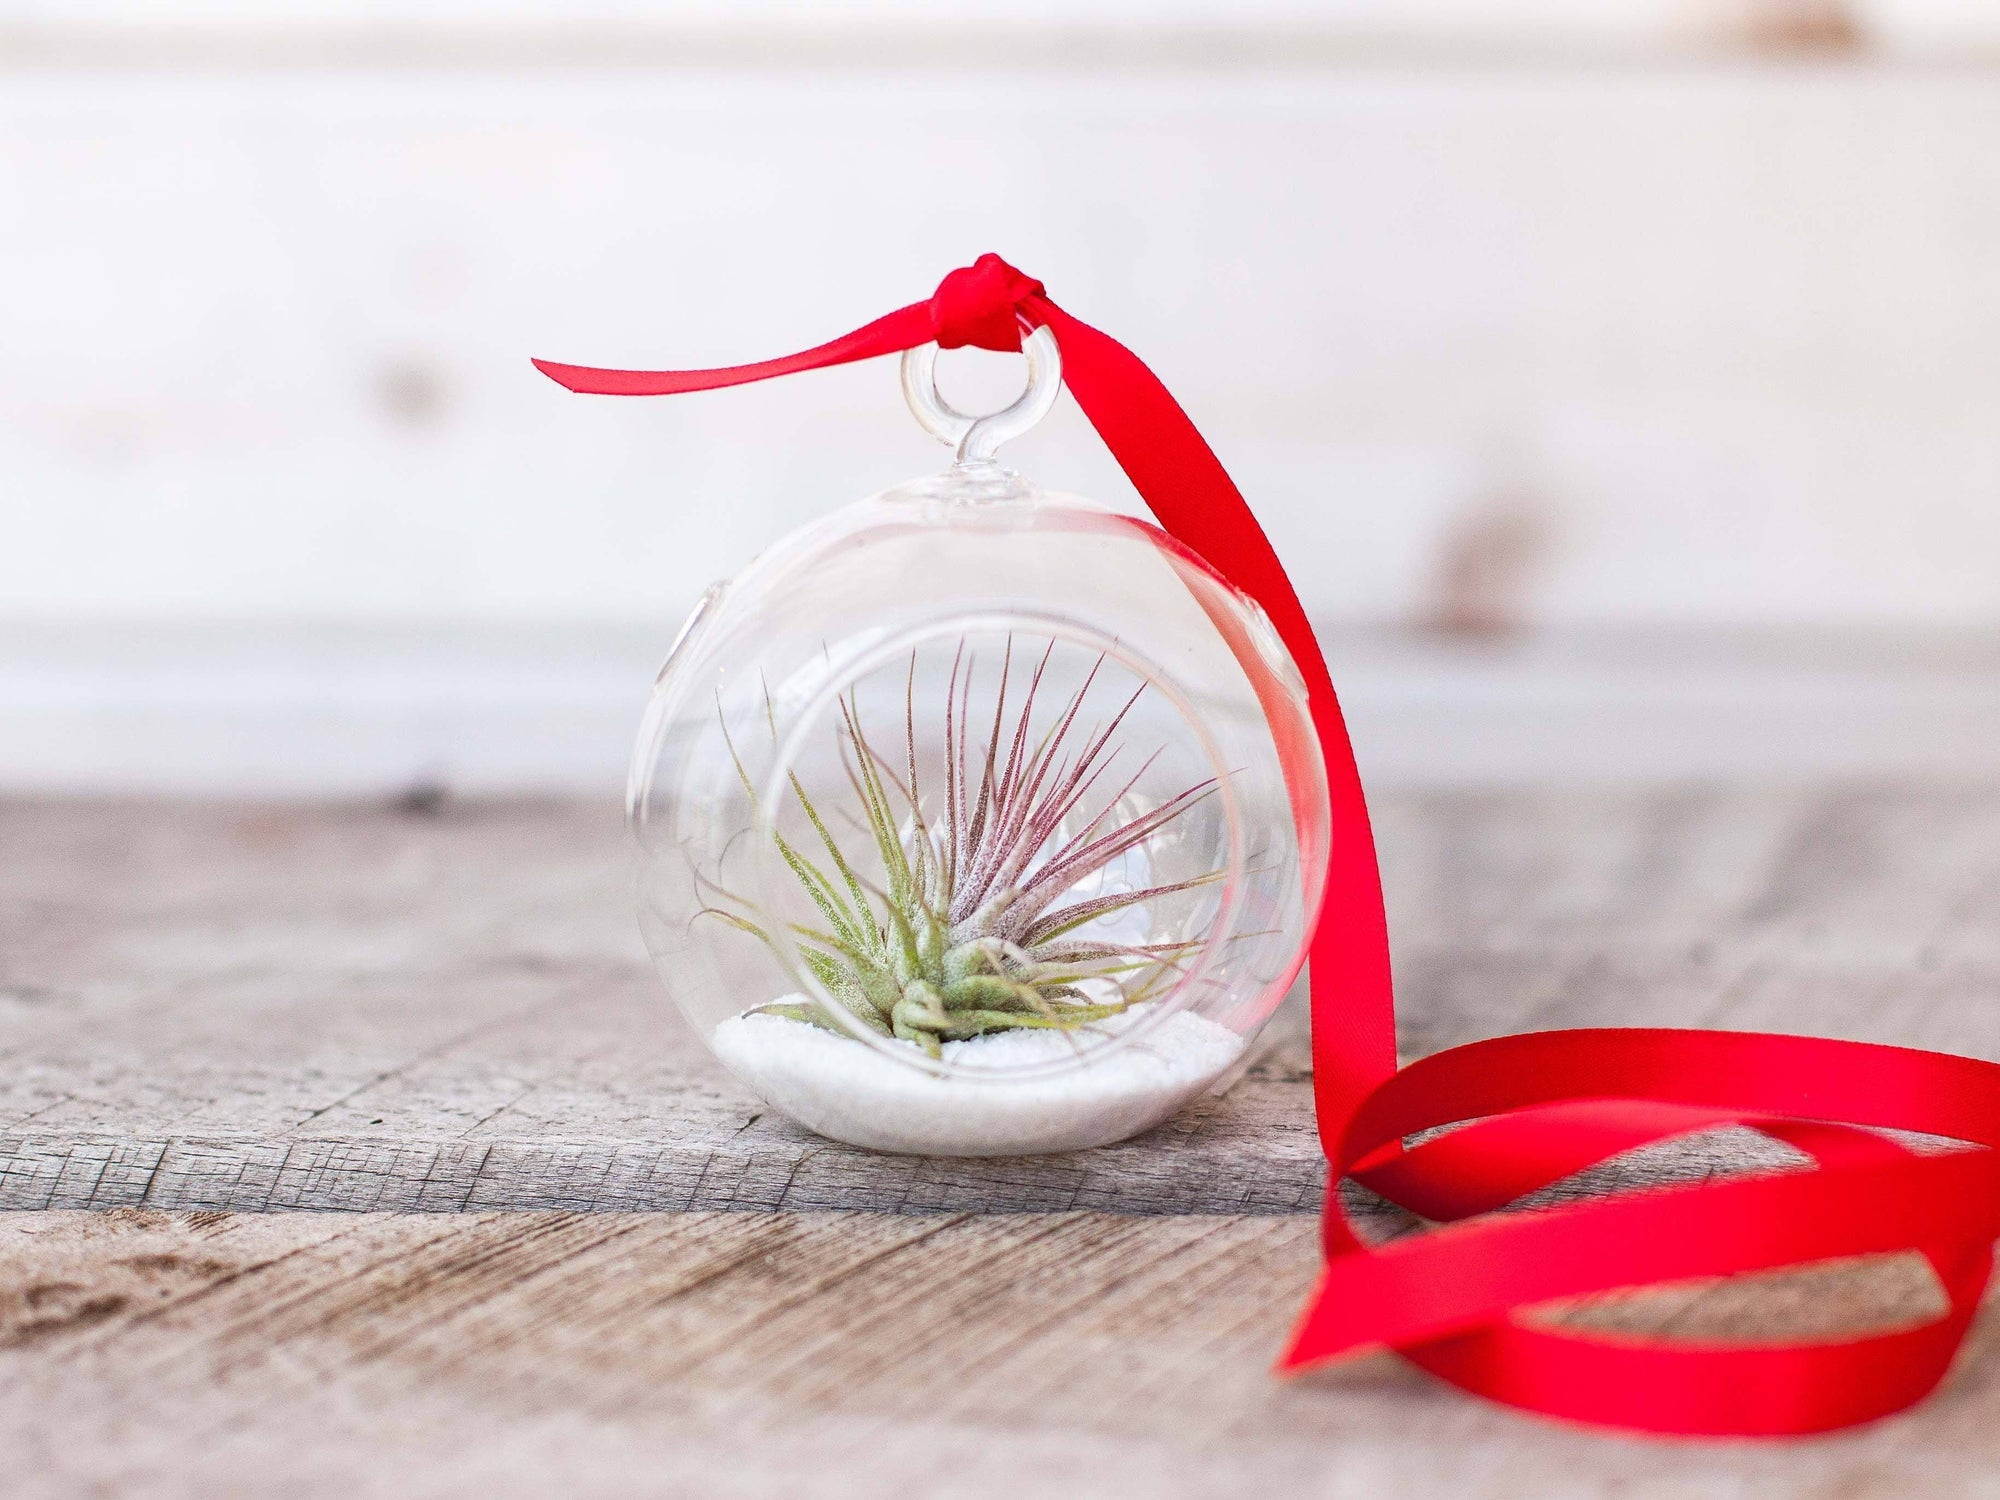 mini glass tillandsia ionantha air plant terrarium with sand